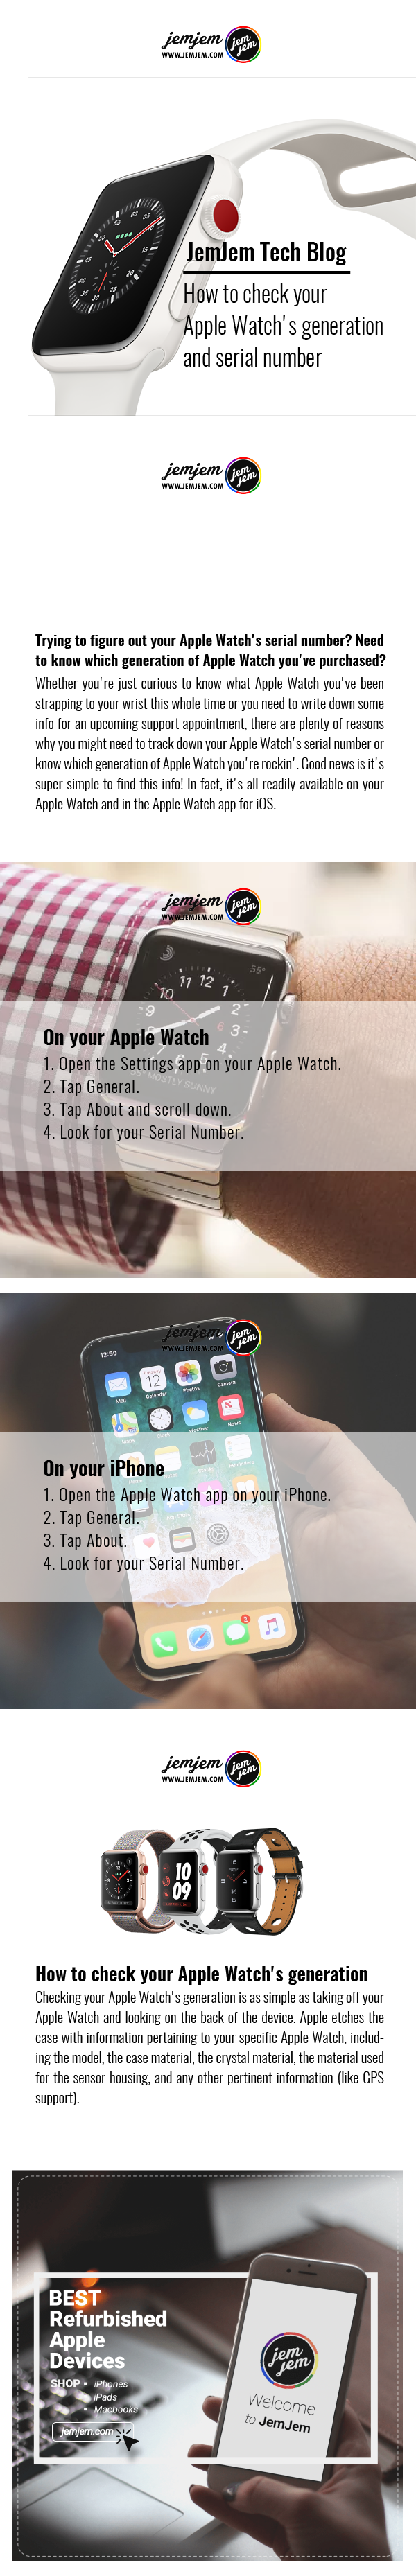 Pin By Jemjem Com On Apple Tips Apple Watch Apple Products Apple